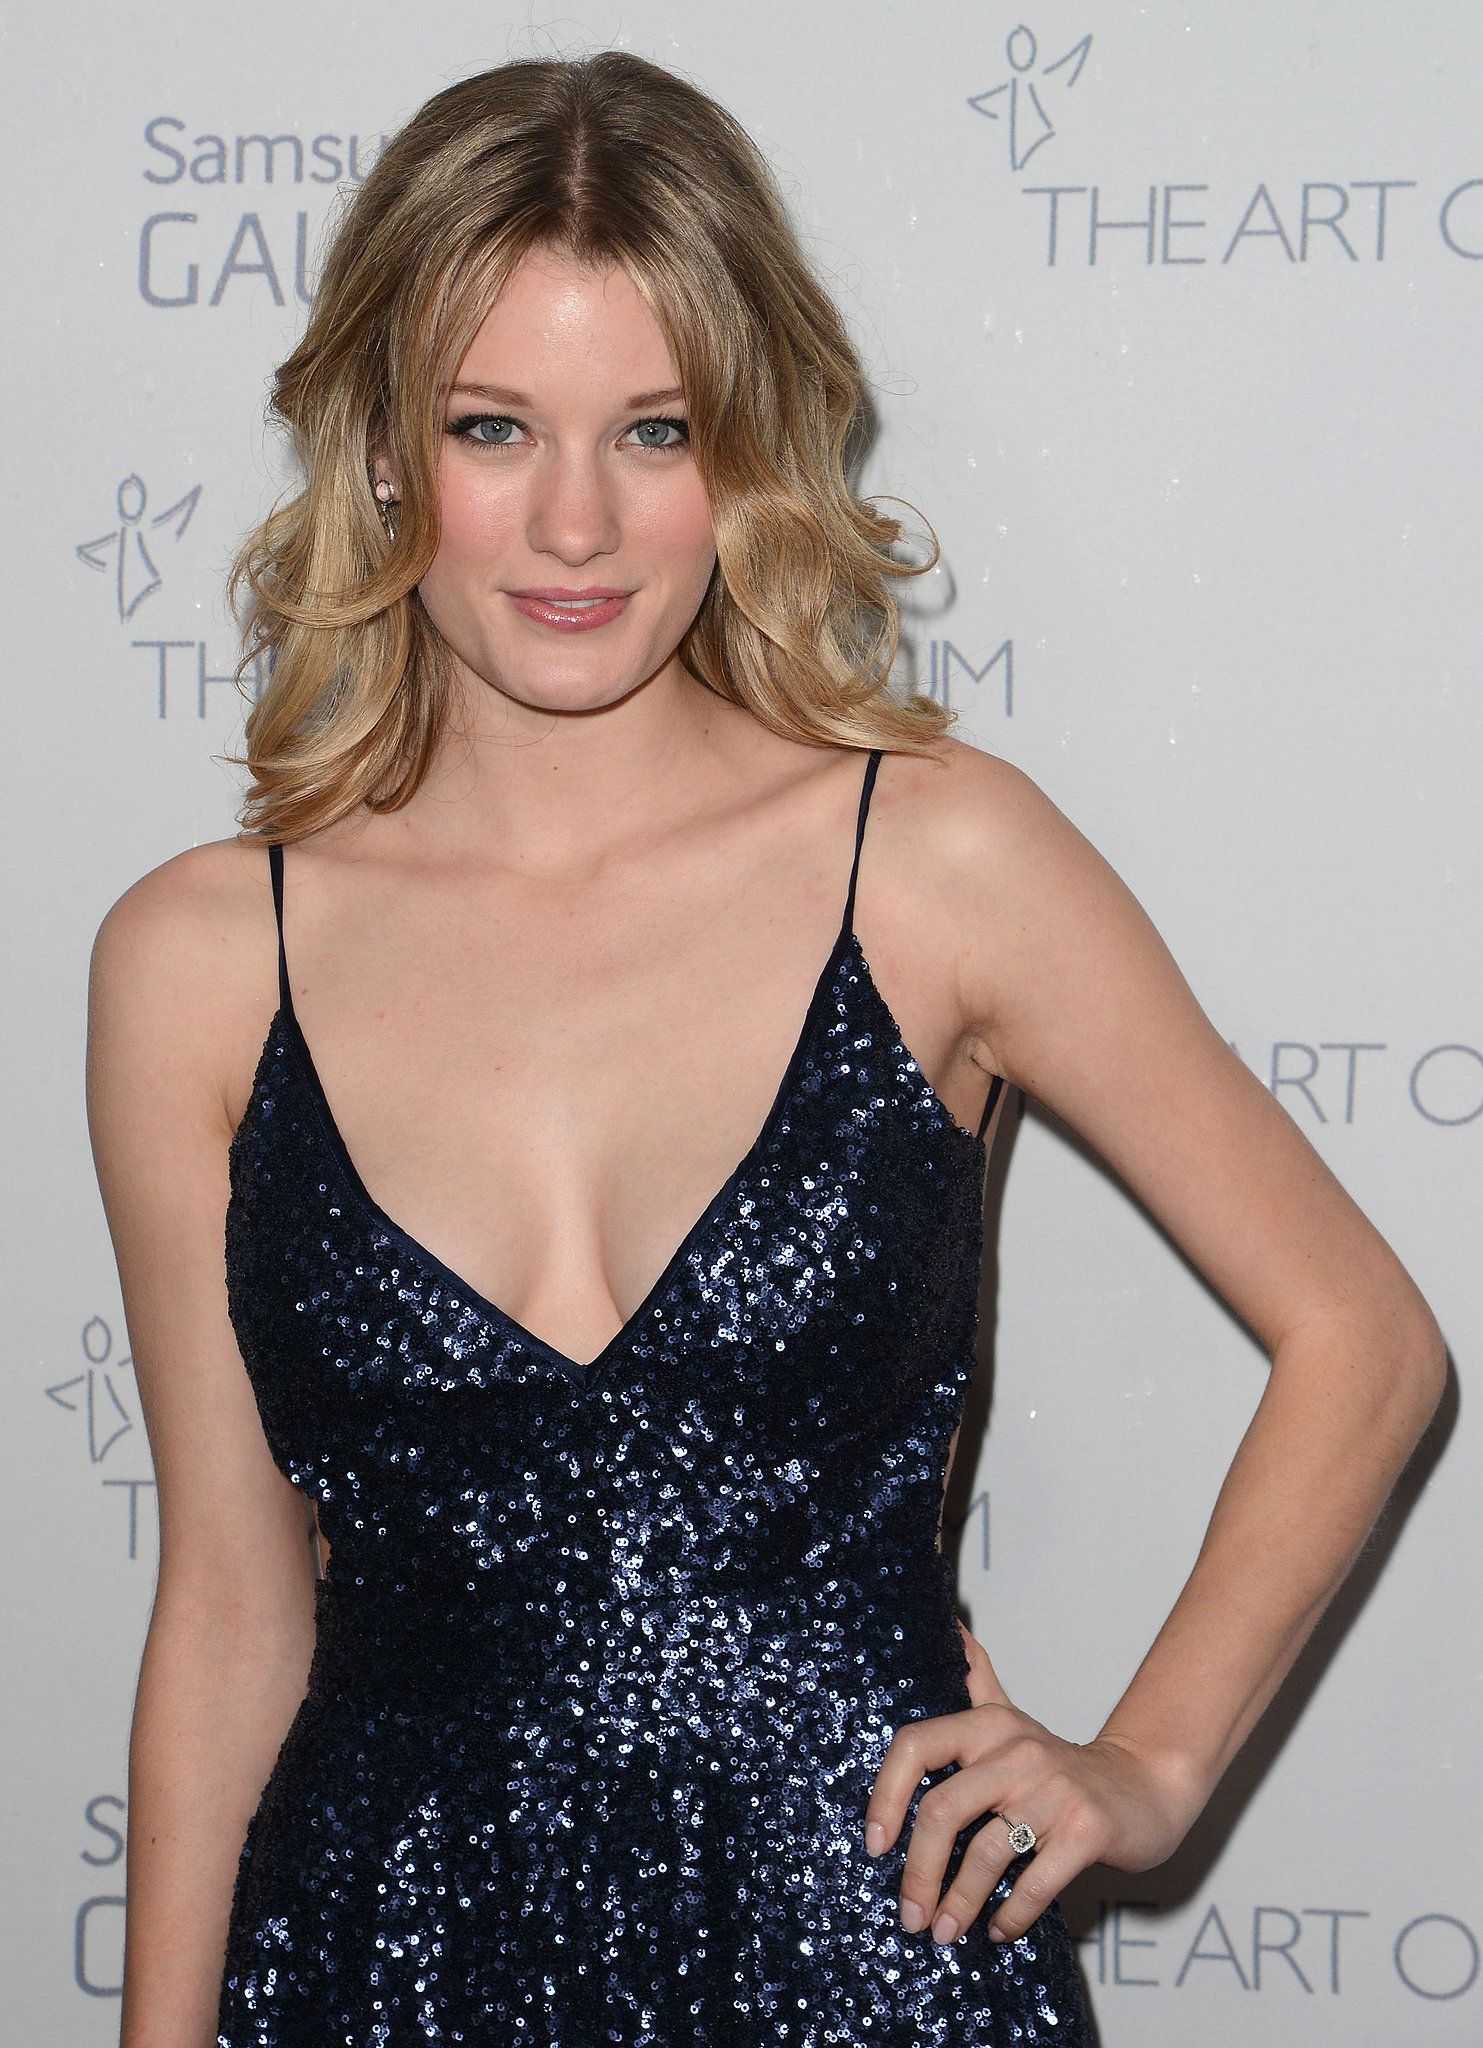 Selfie Ashley Hinshaw nudes (61 foto and video), Tits, Leaked, Boobs, underwear 2018